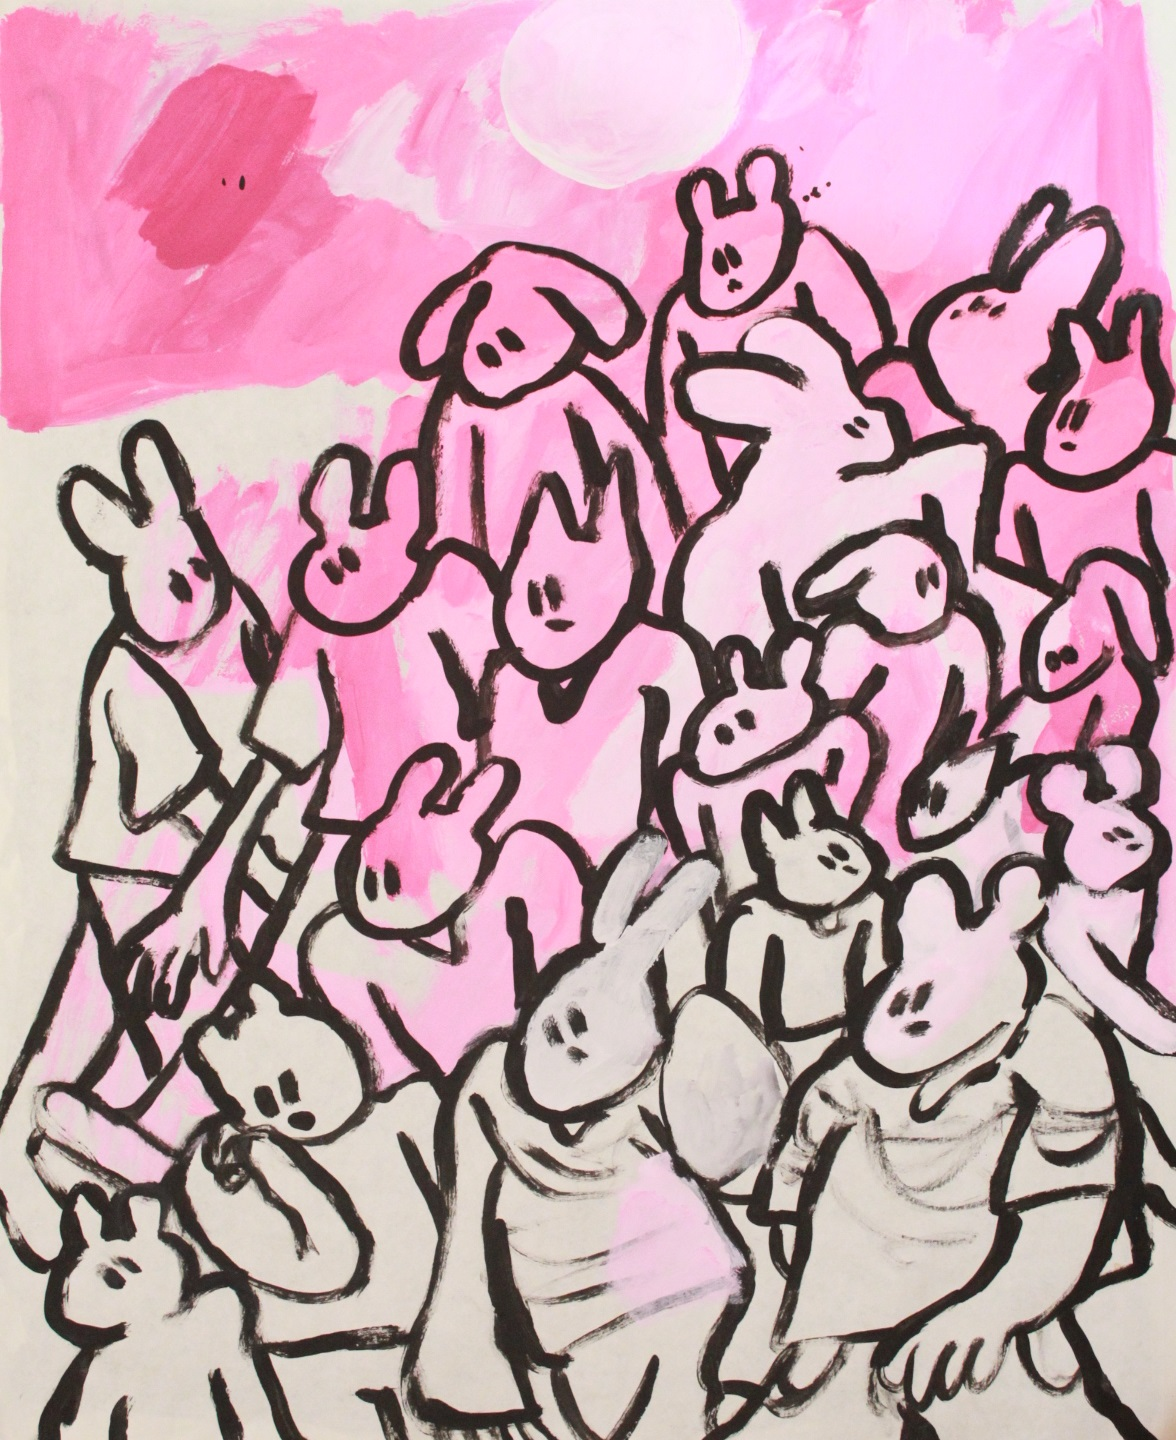 pink crowd, 2019. acrylic on paper.